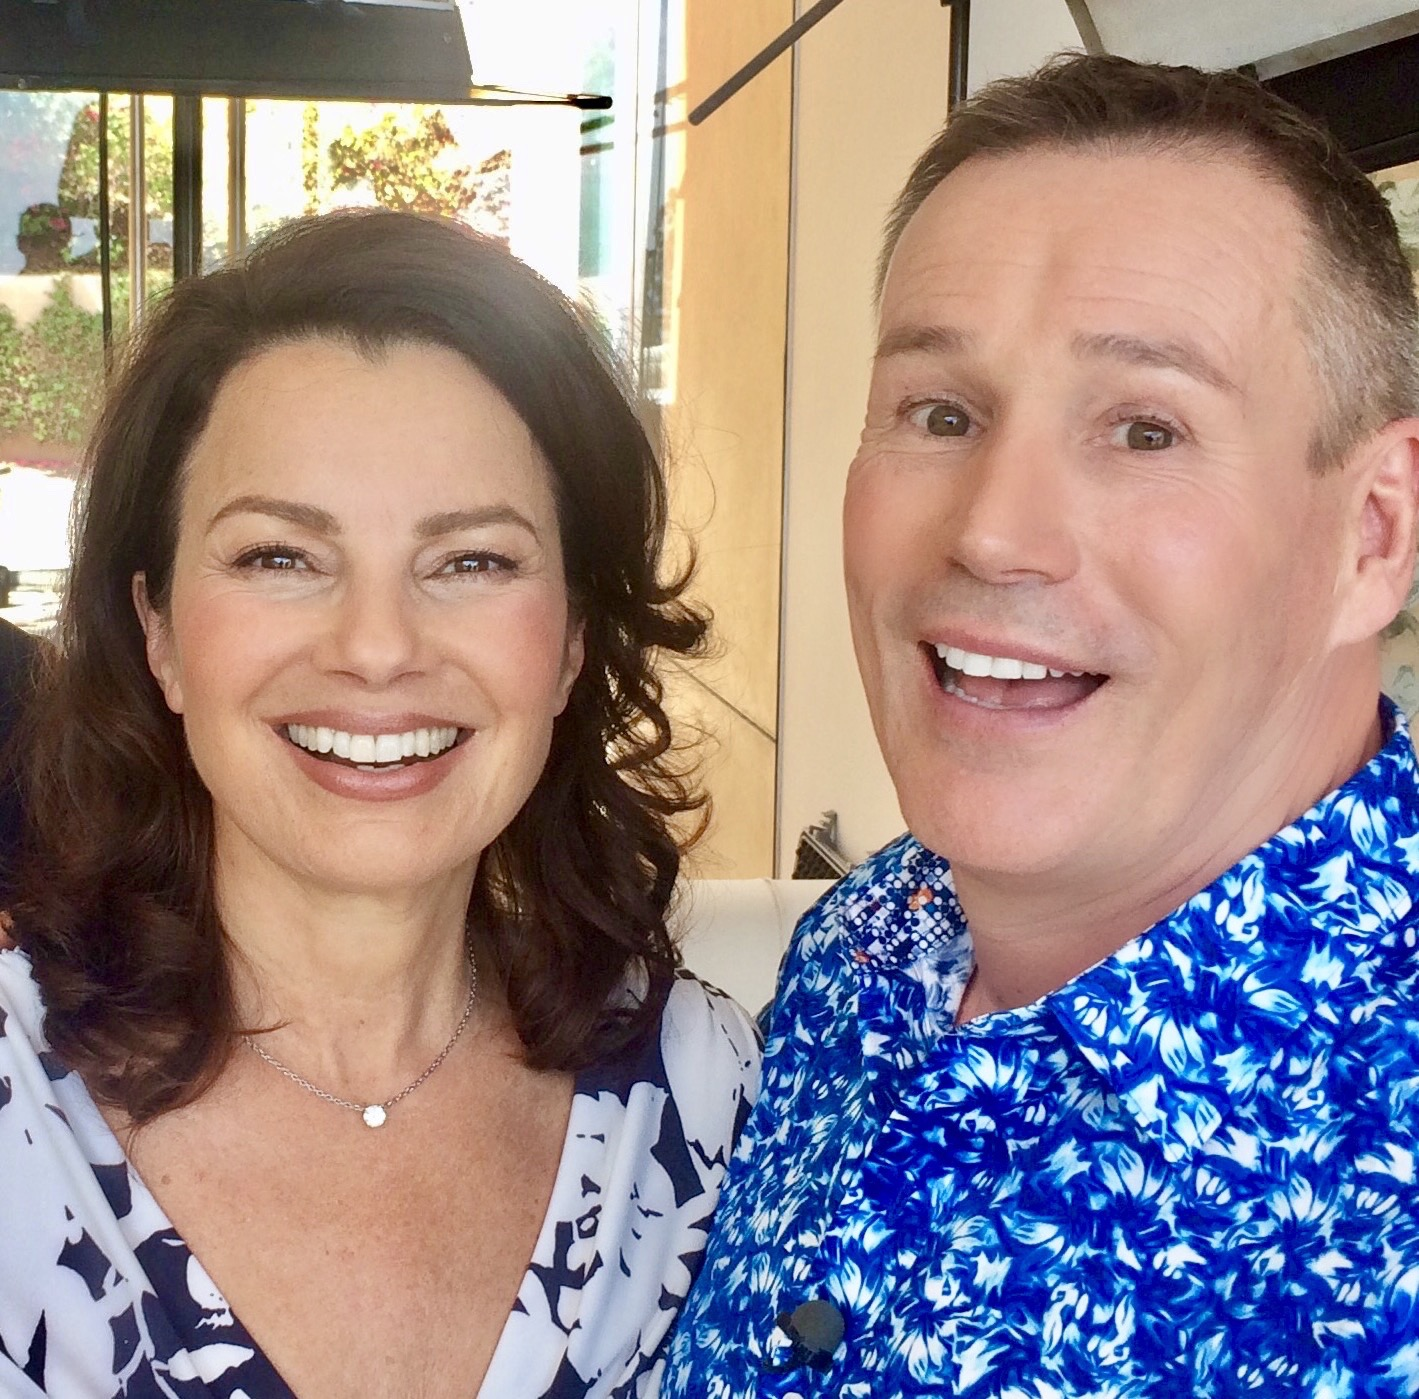 Craig Bennett was inspired to speak out after his famous interview with Fran Drescher. Source: Craig Bennett (supplied).